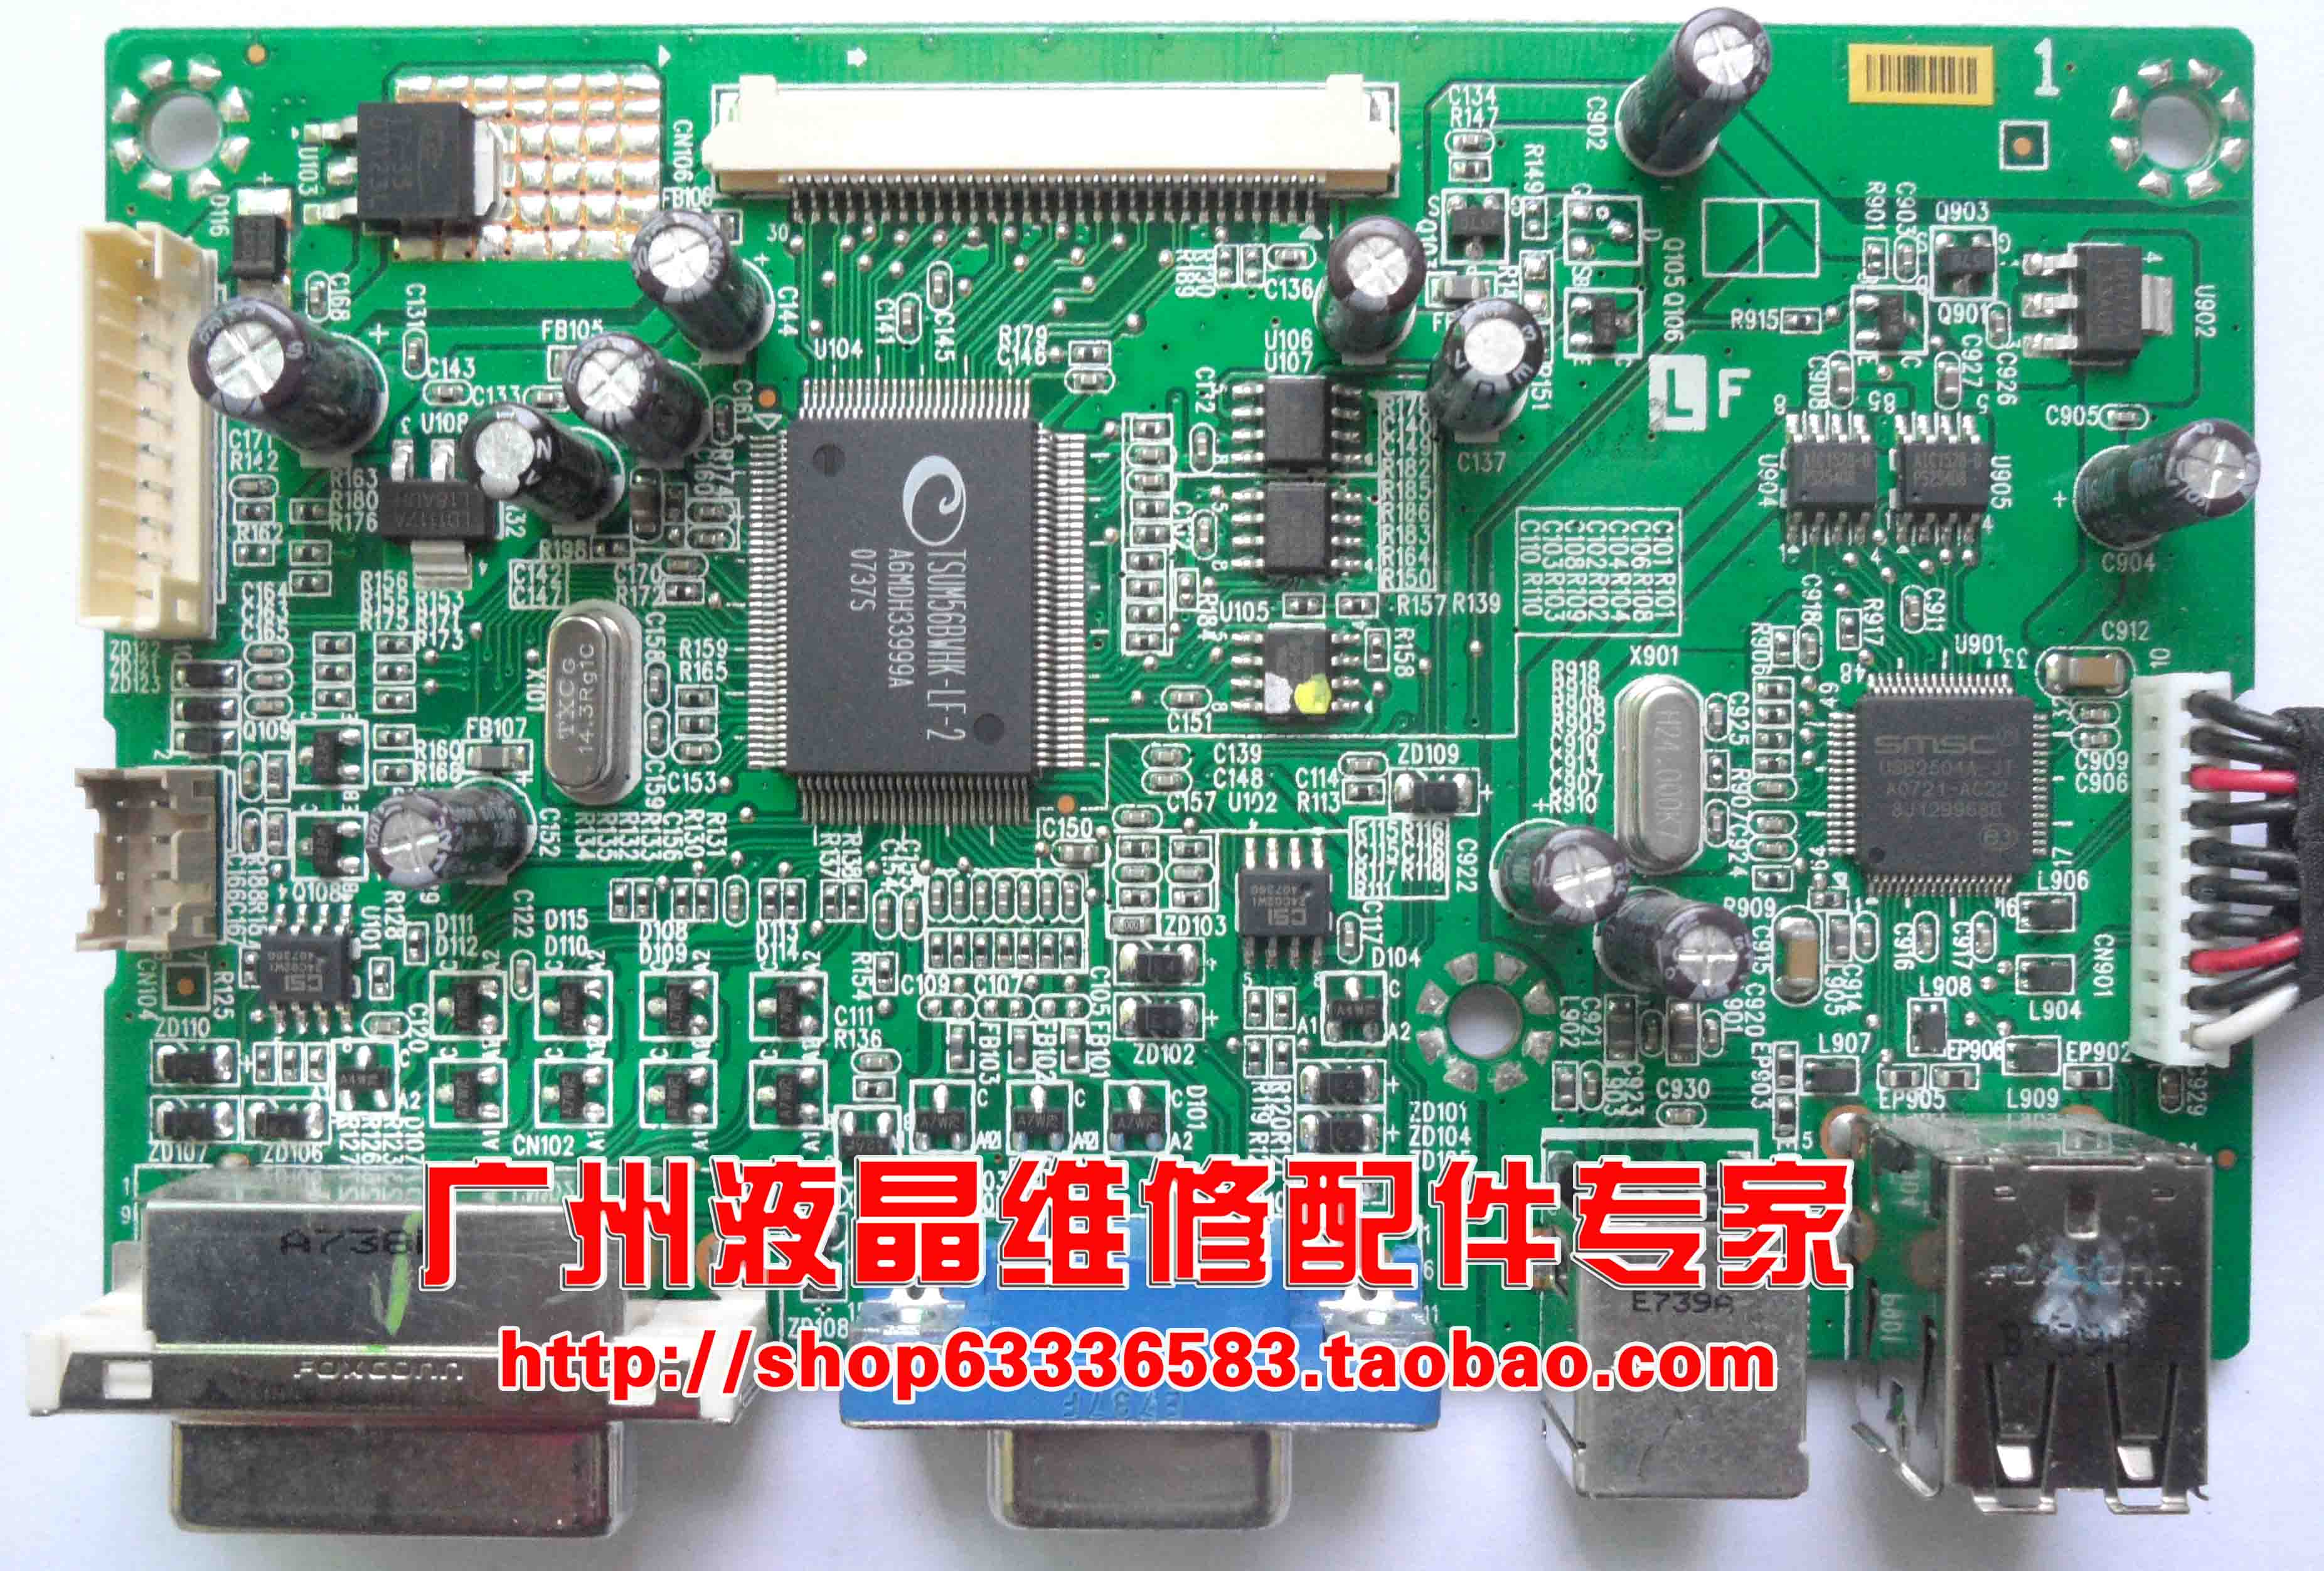 Free Shipping>Original 100% Tested Working 1908WFP DELF007 driver board ILIF-054 491101300100R motherboard free shipping original 100% tested working vg2021m driver board motherboard a220z1 z01 h s6 decode board